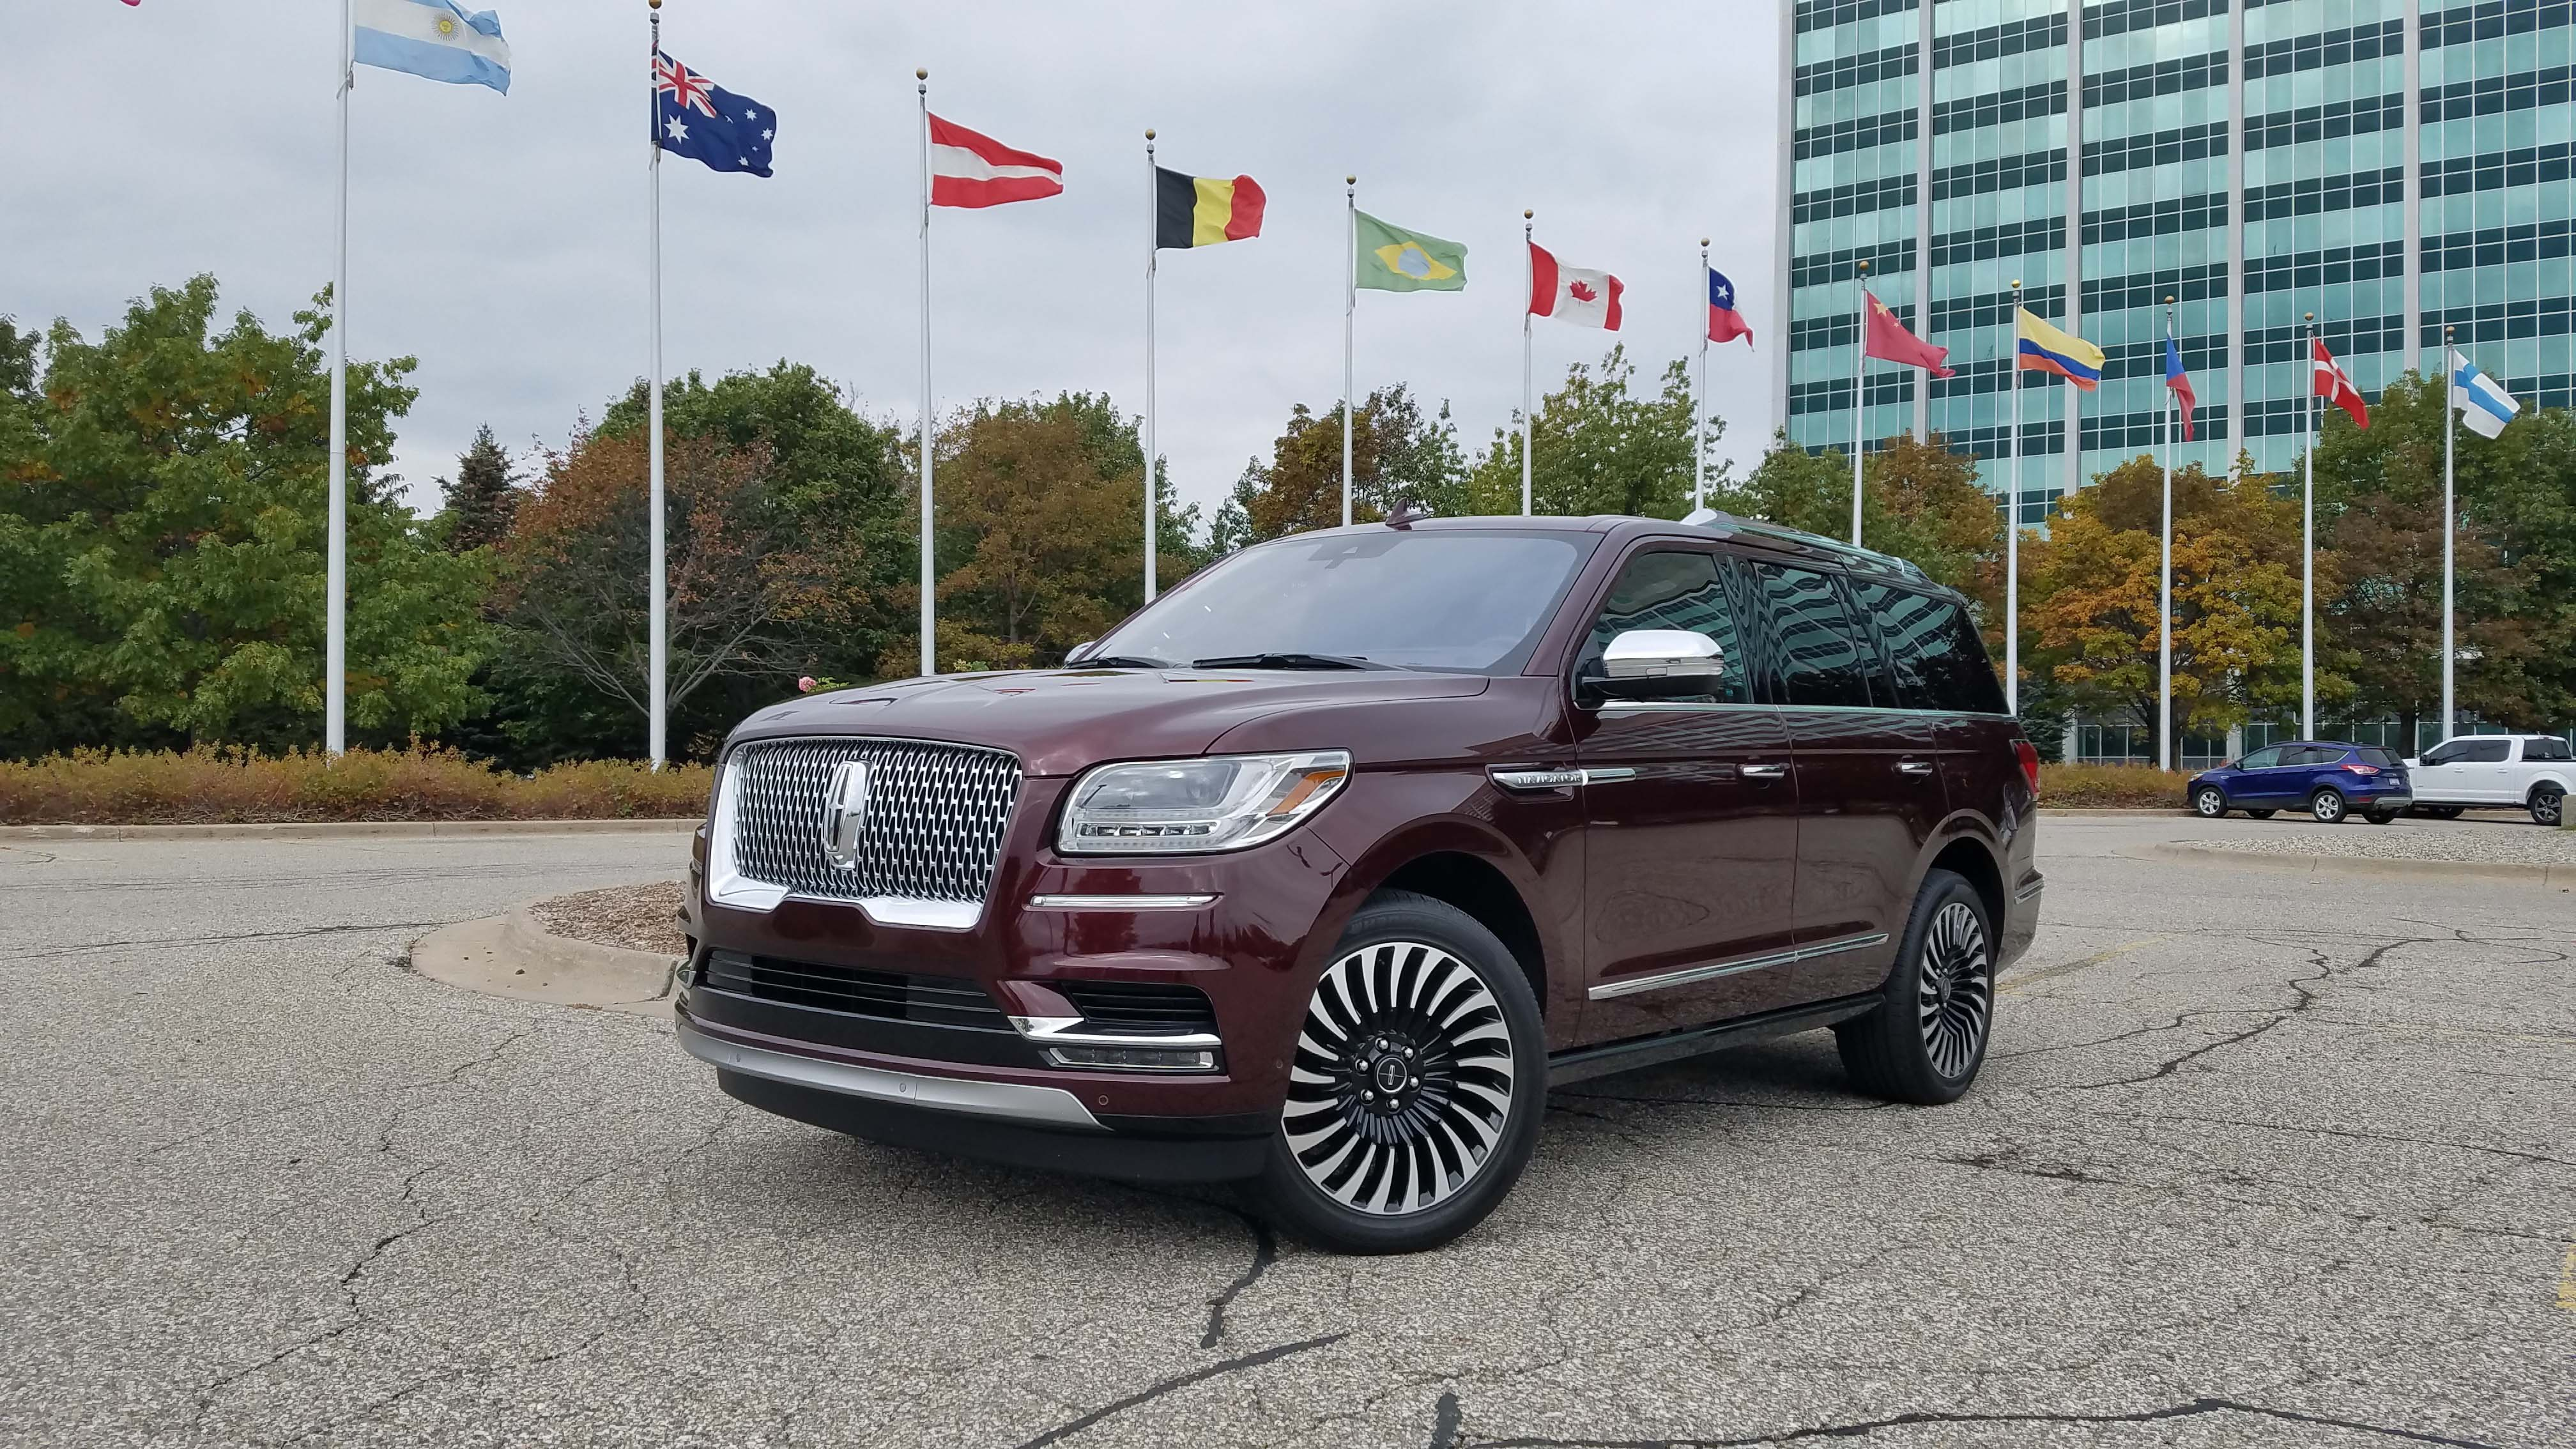 All-new for 2018, the Lincoln Navigator is the first